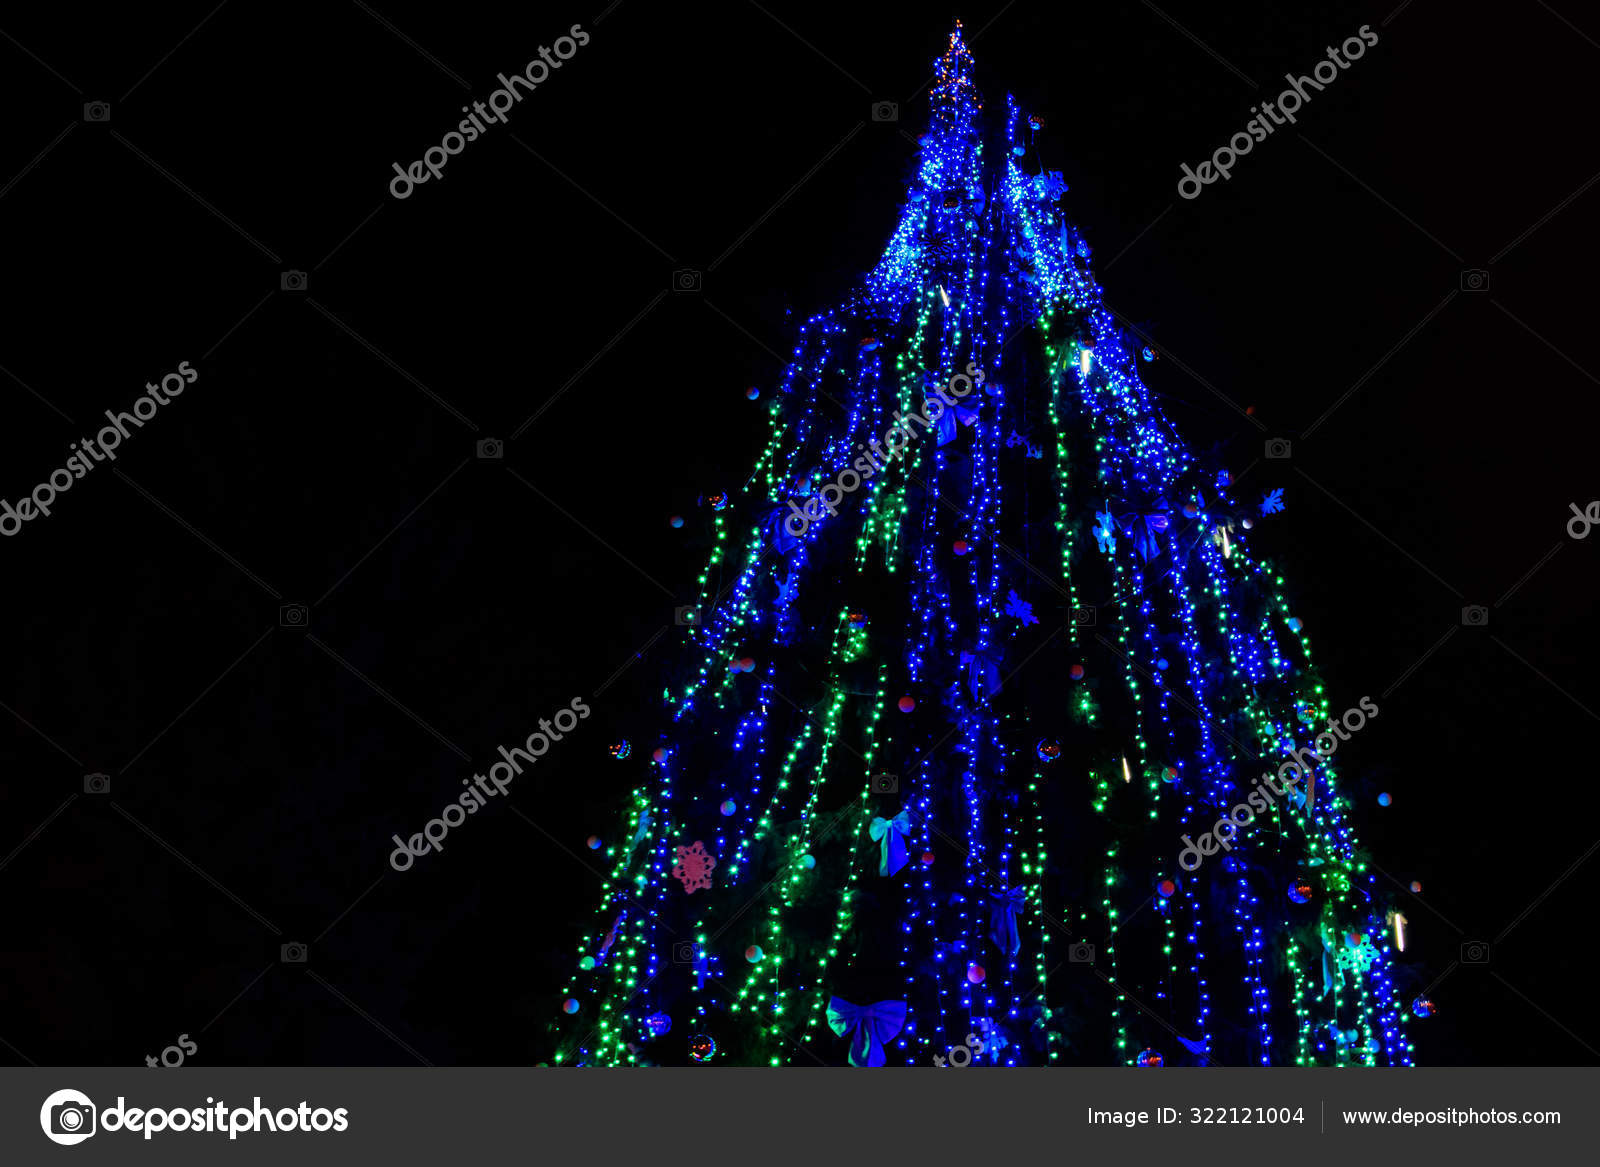 Decorated Christmas Tree With Multi Colored Lights At Night Stock Photo C Olyasolodenko 322121004